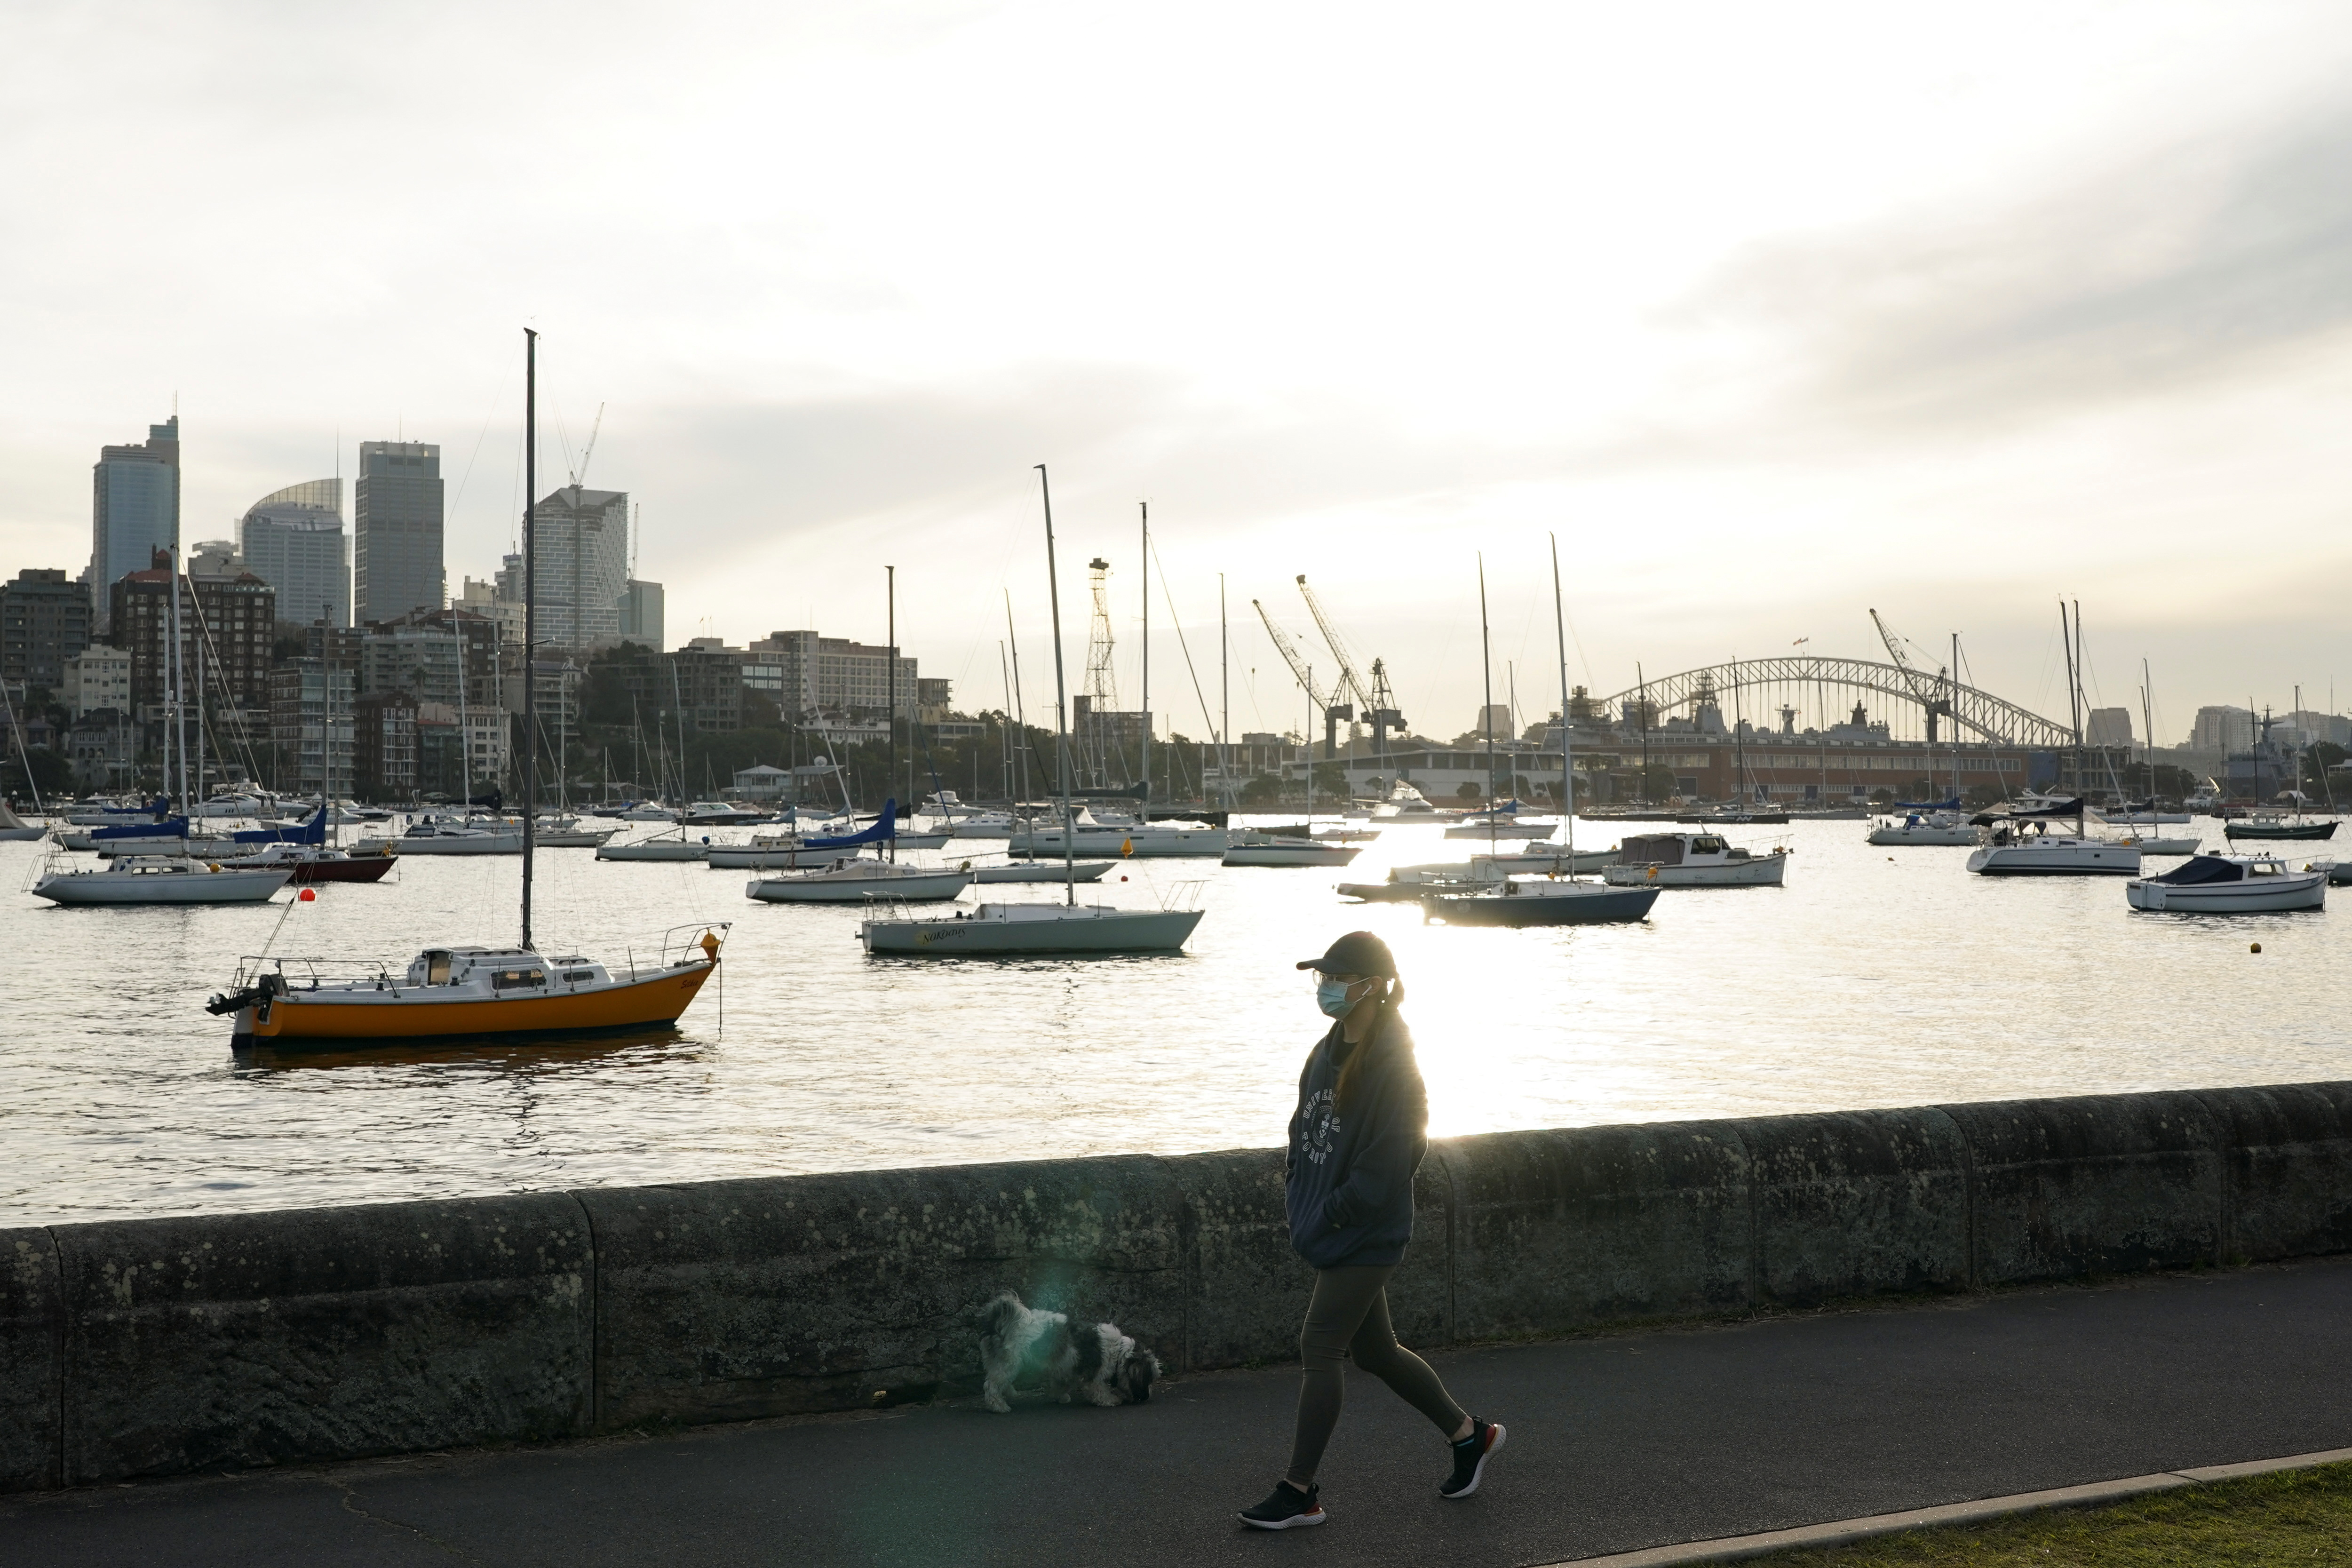 A woman wearing a protective face mask walks along a path by the water during a lockdown to slow the spread of a coronavirus disease (COVID-19) in Sydney, Australia, July 8, 2021. REUTERS / Loren Elliott